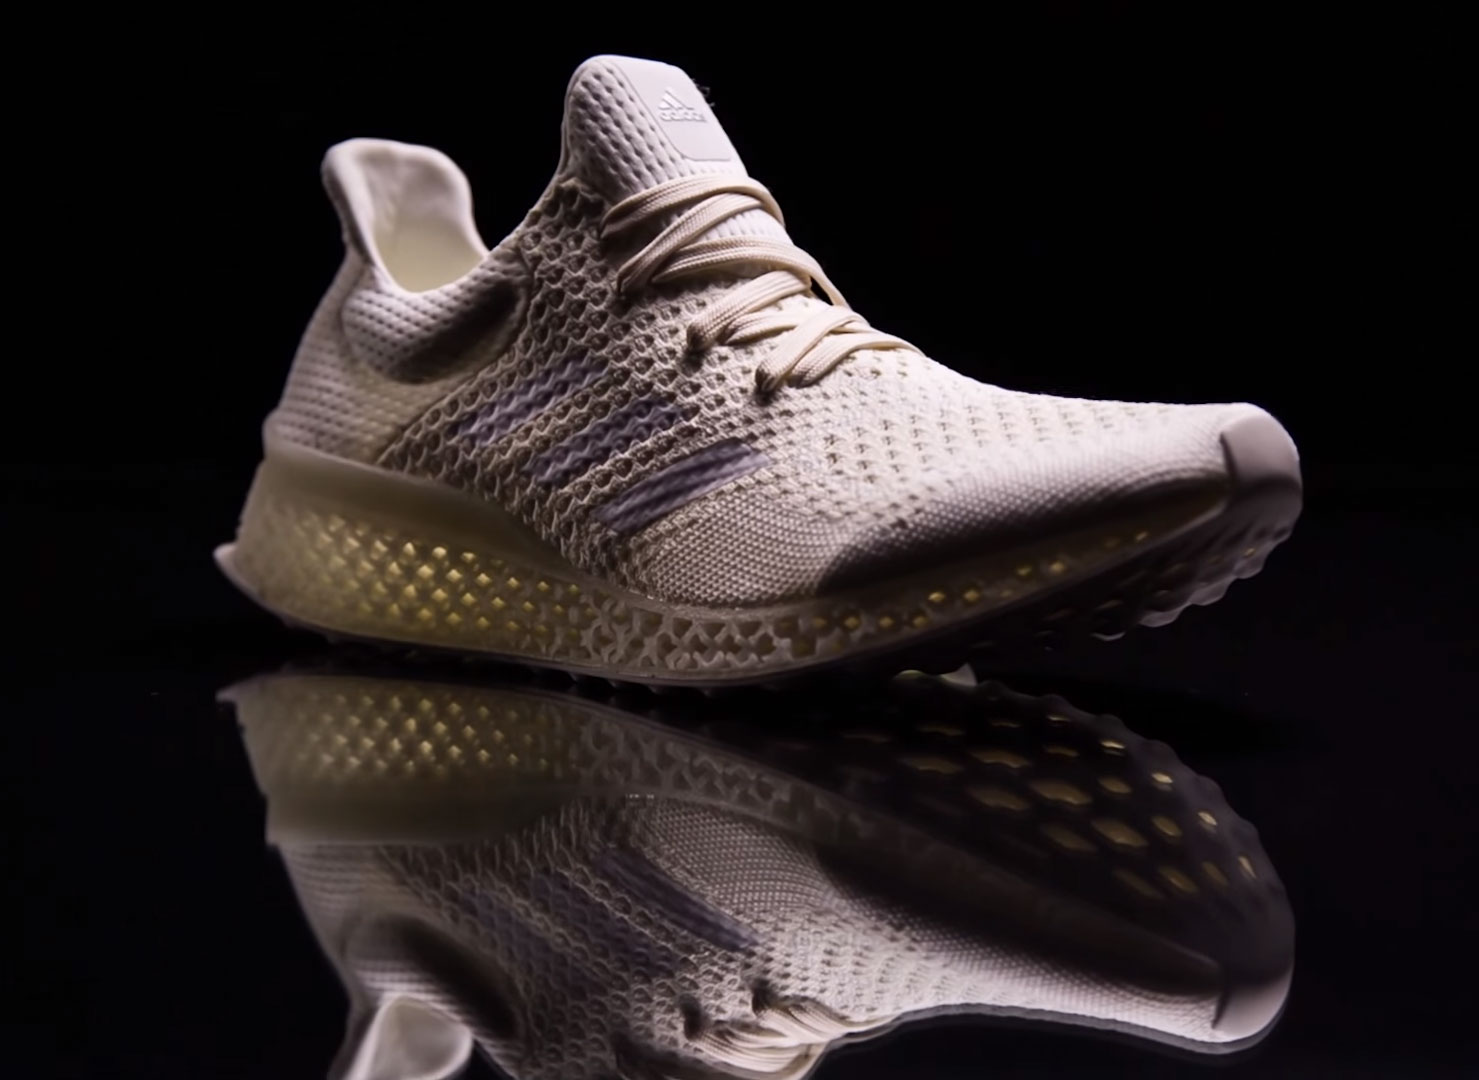 3D printed shoes could mean a perfect fit for runners